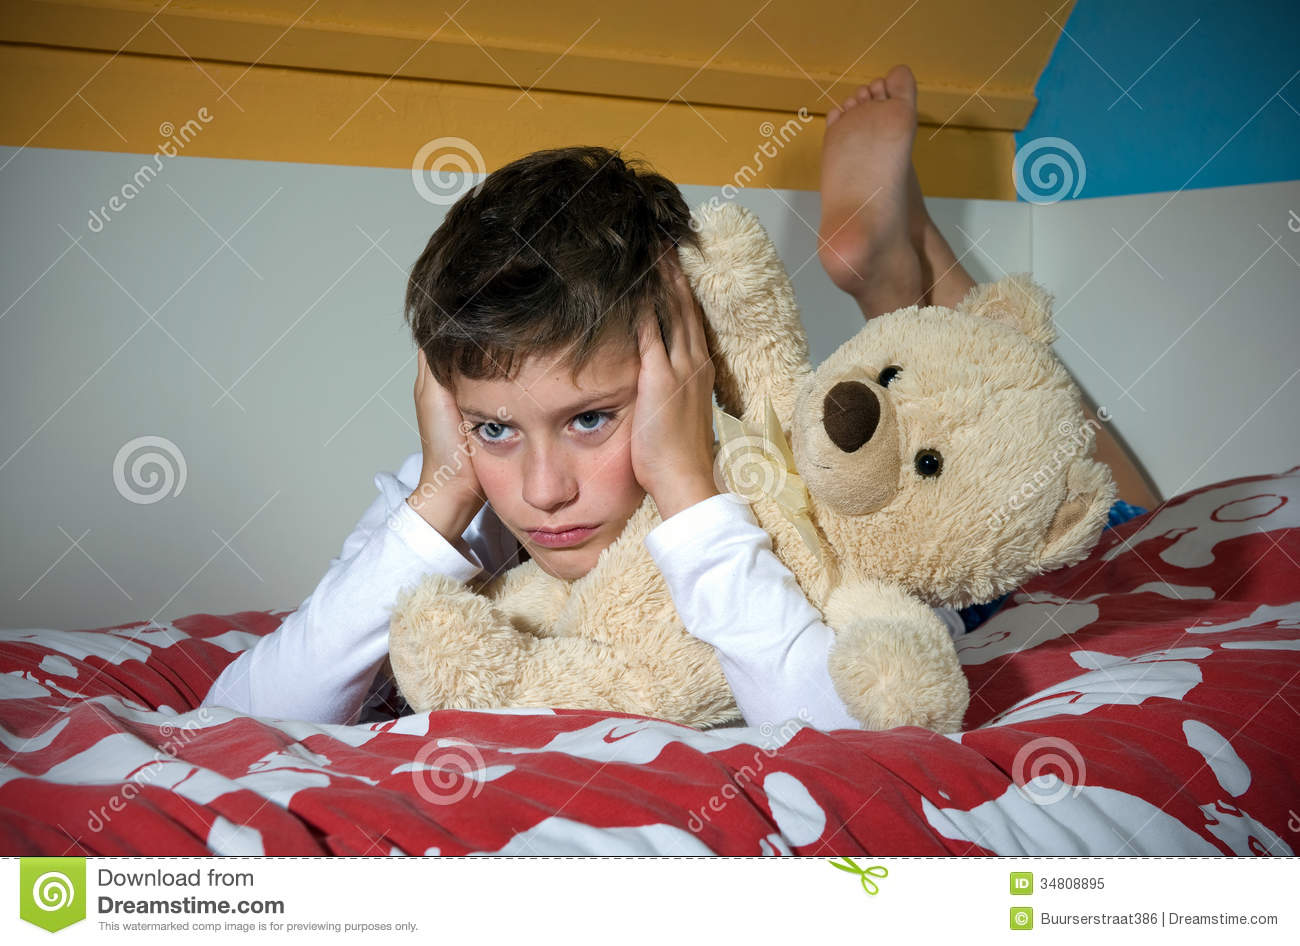 Boy Angry On Bed Royalty Free Stock Photo - Image: 34808895